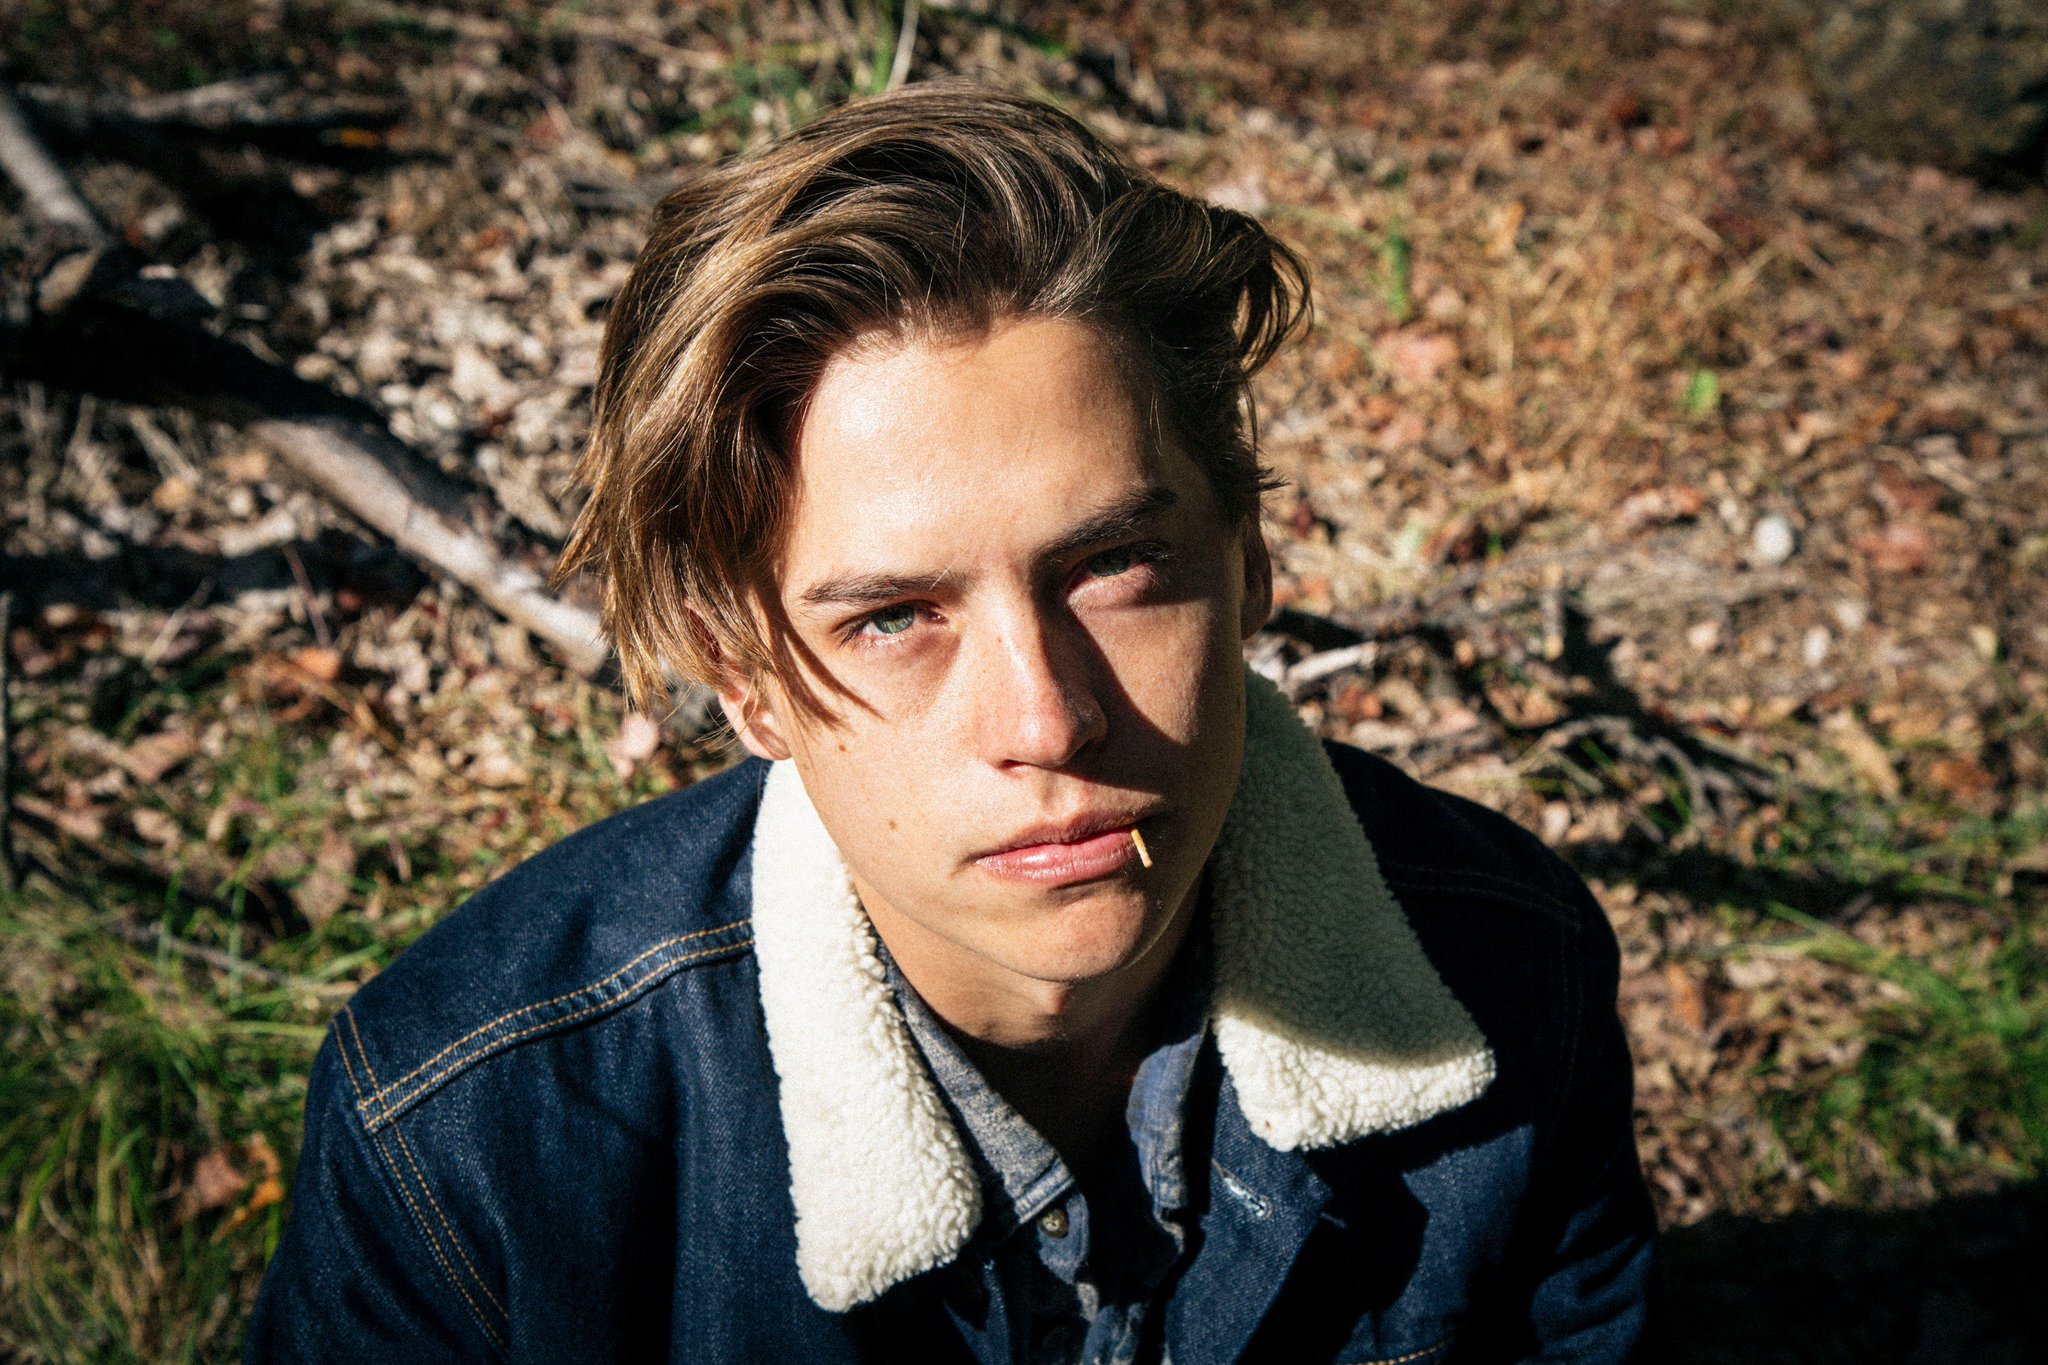 Cole M Sprouse On Twitter You Came Here For Selfies And